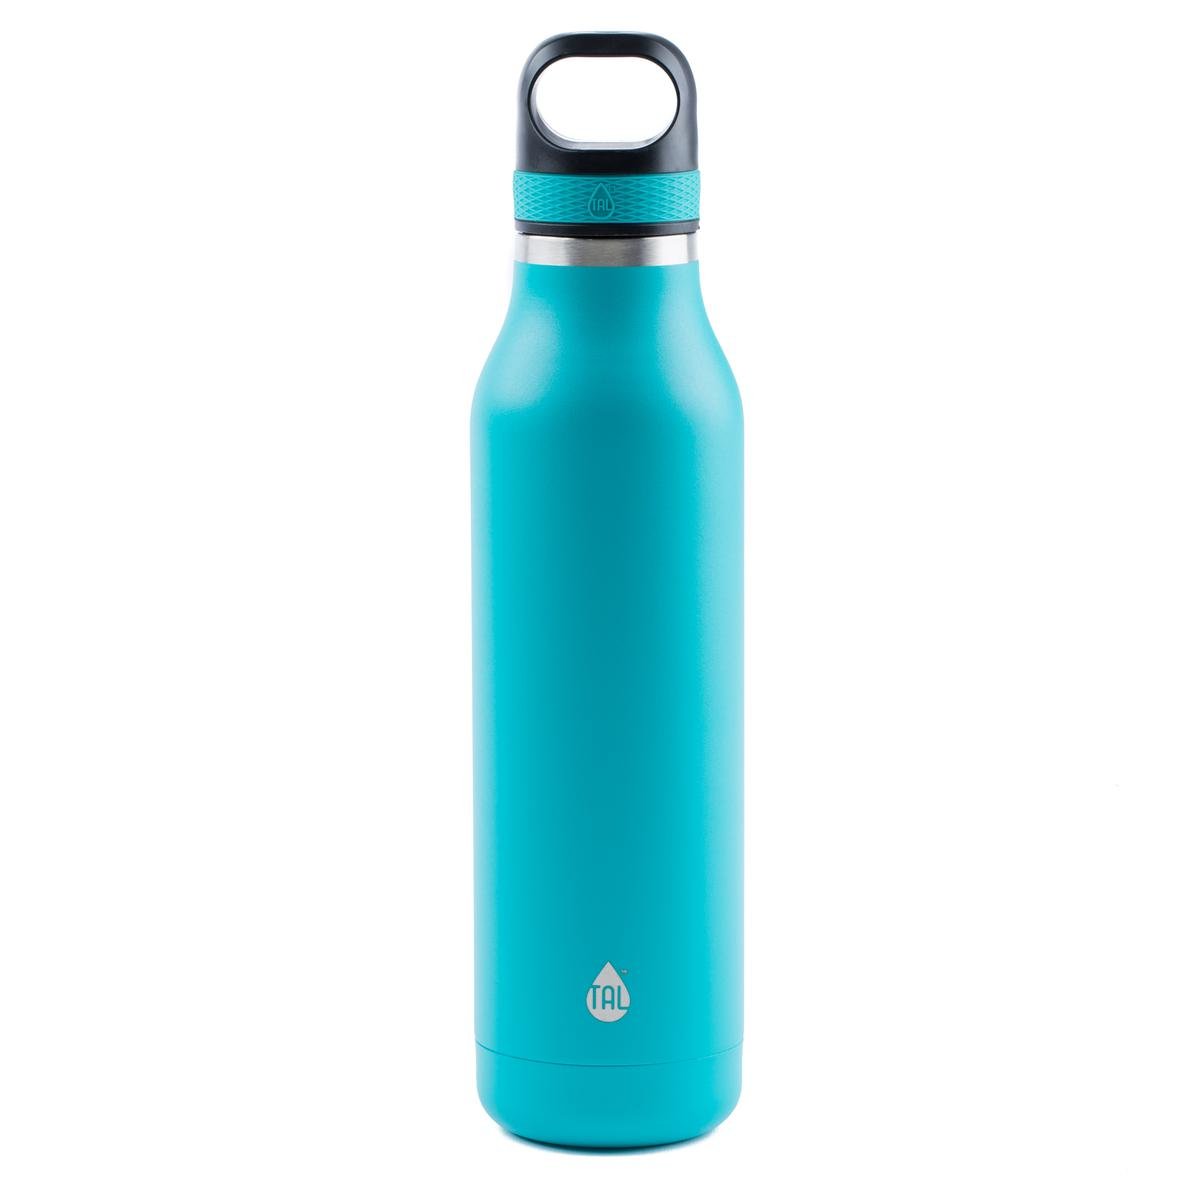 TAL Teal 24oz Double Wall Vacuum Insulated Stainless Steel Ranger™ Sport Water Bottle